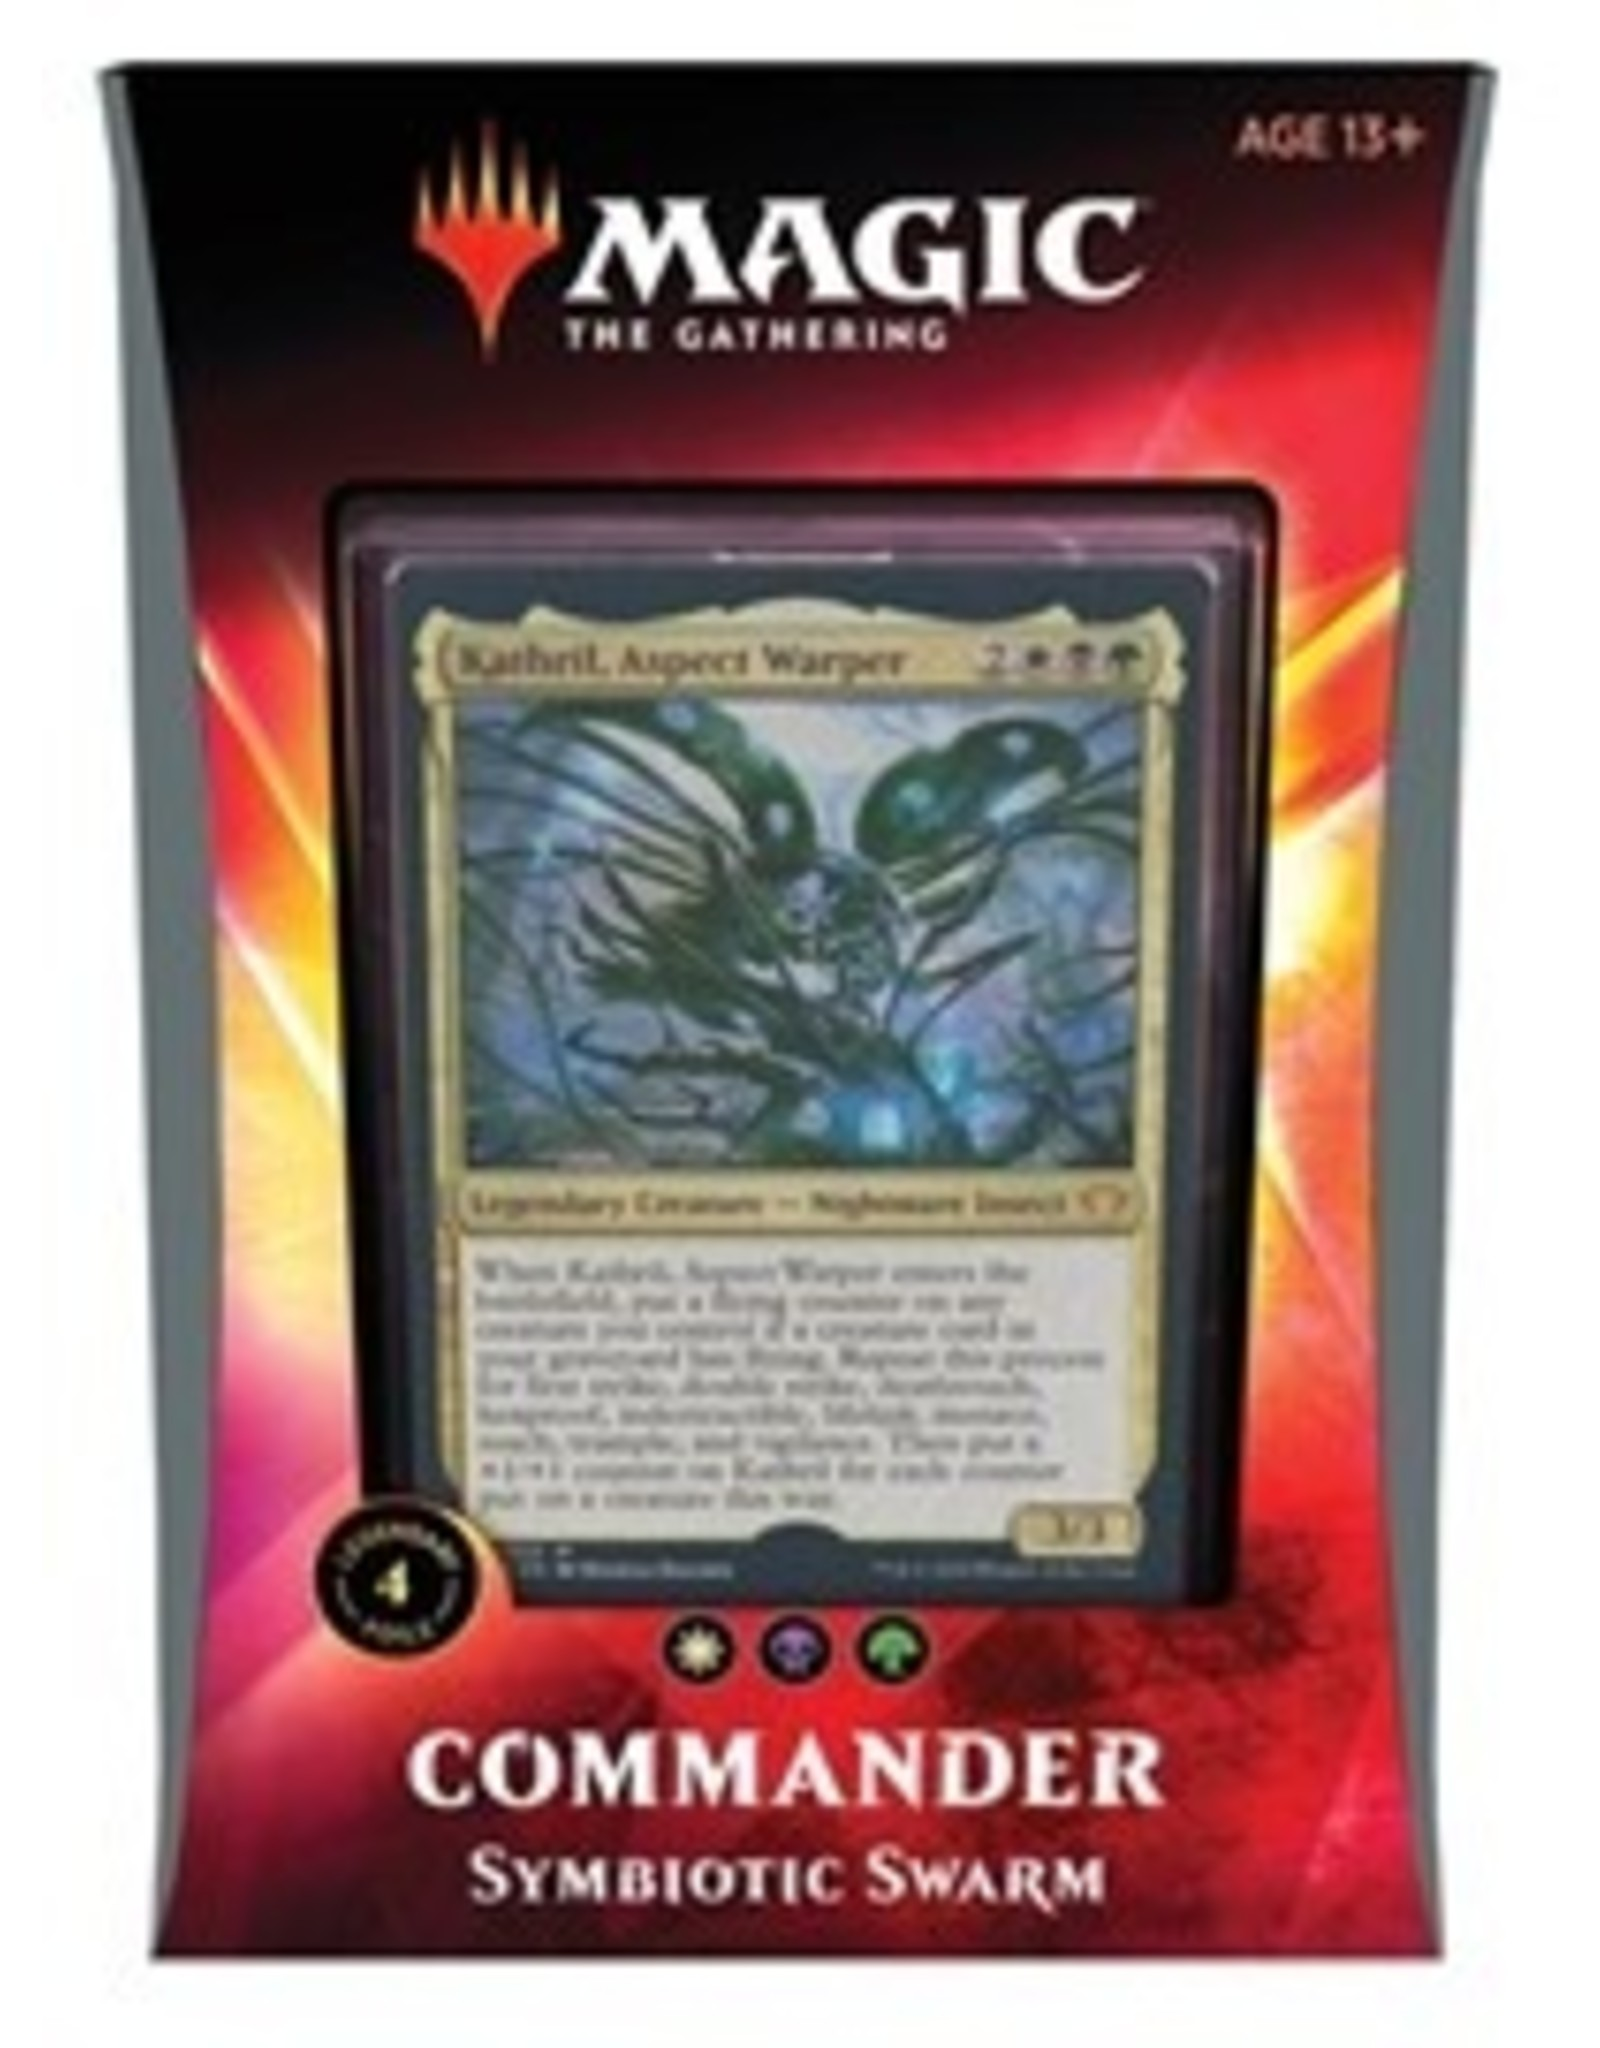 Magic Ikoria: Commander: Symbiotic Swarm [Kathril, Aspect Warper]